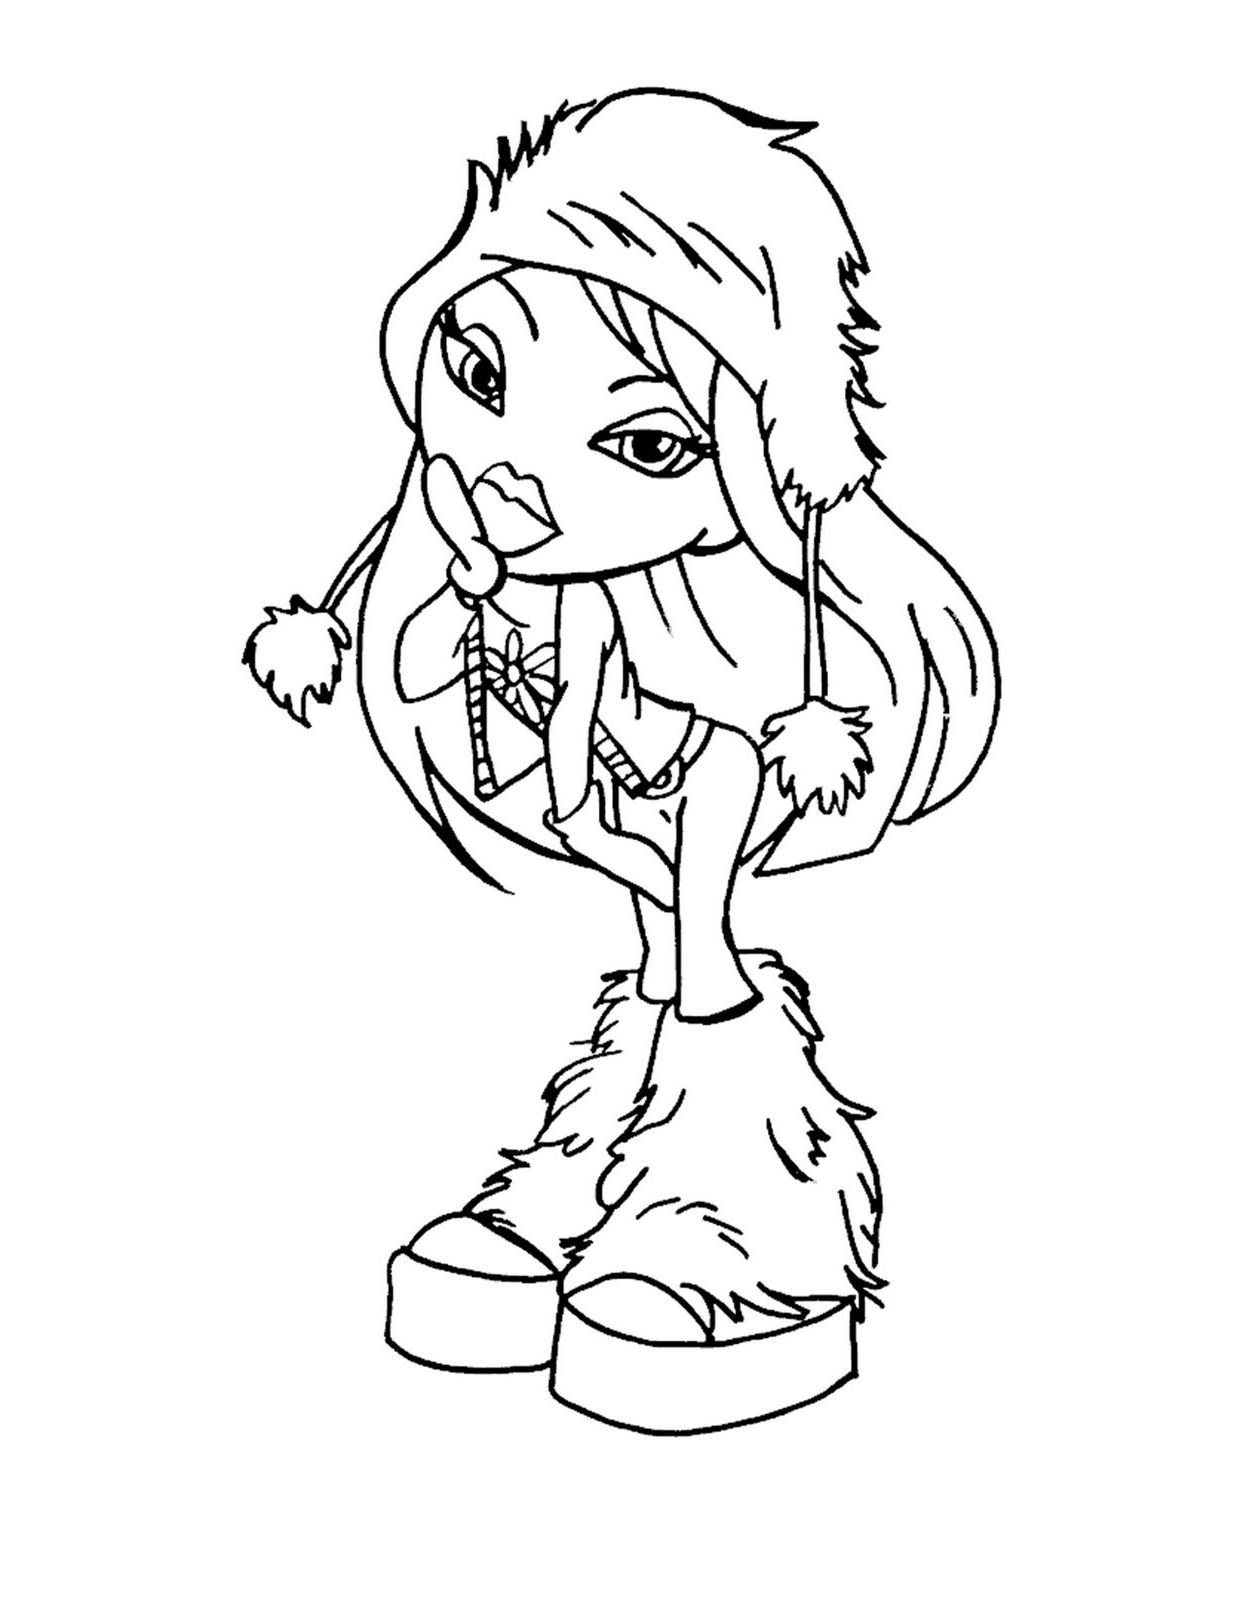 Coloring princess pictures - Brats Coloring Princess Pages Disney Princess Coloring Pages